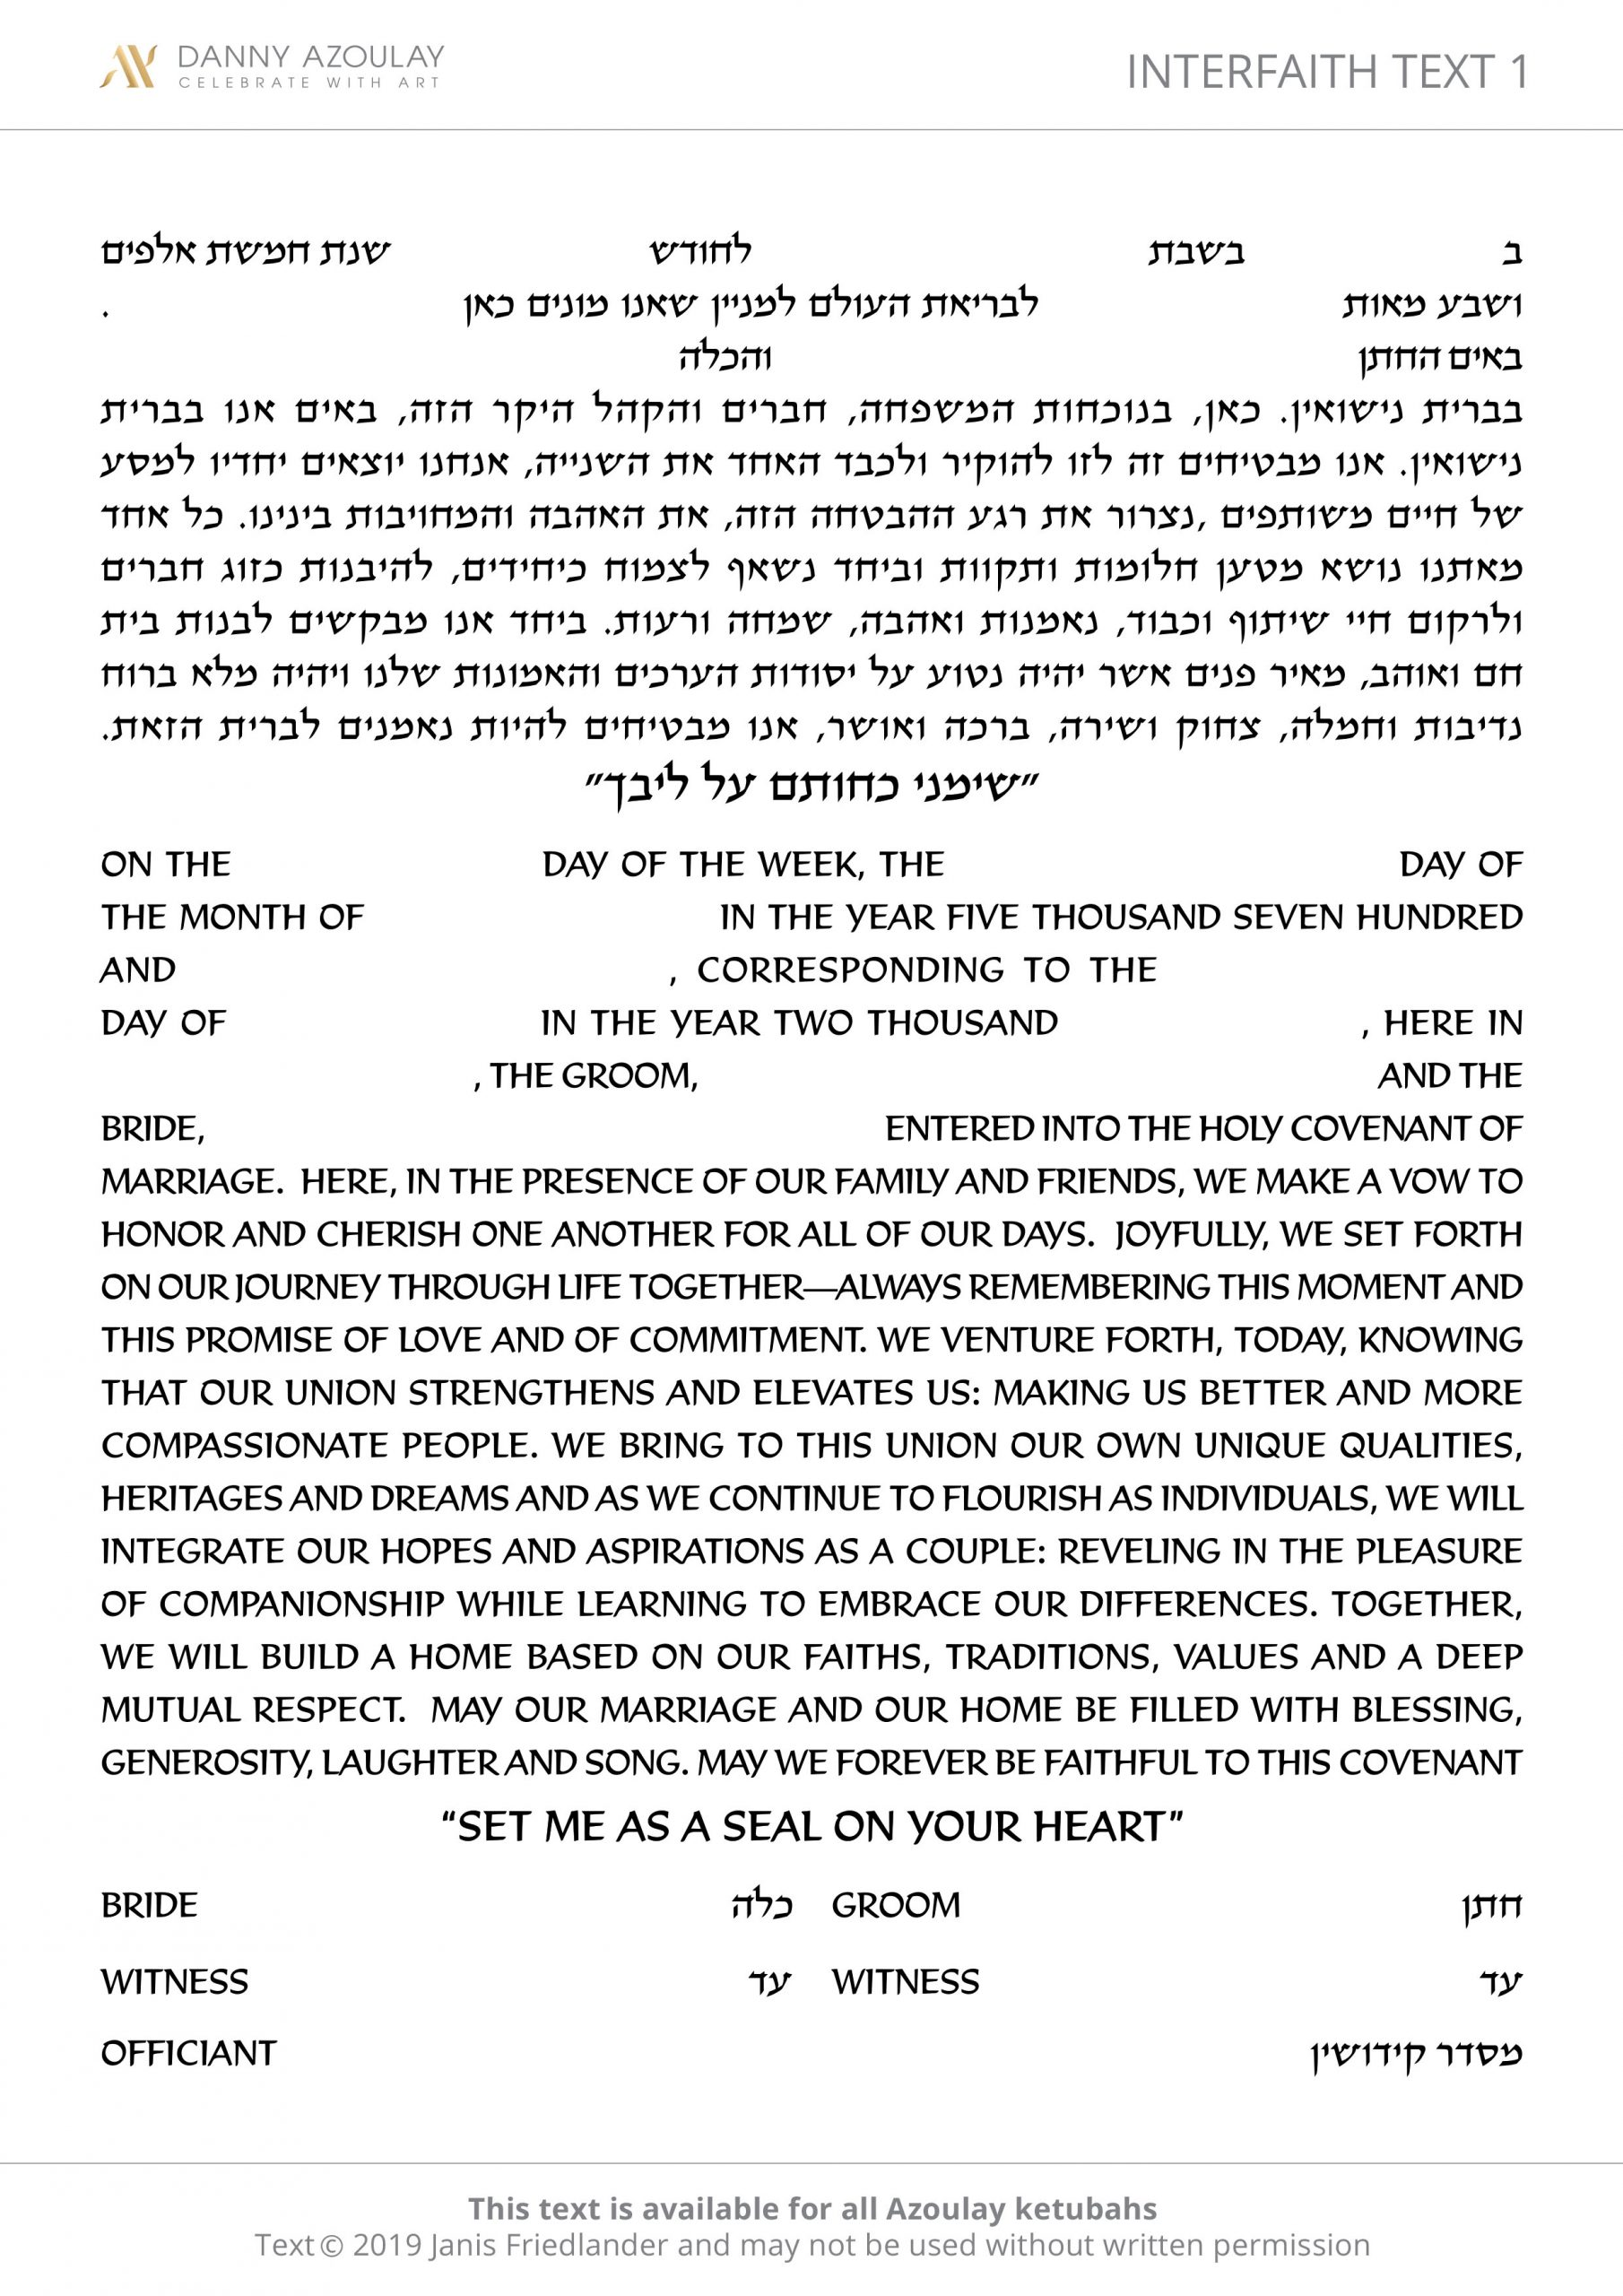 INTERFAITH TEXT 2